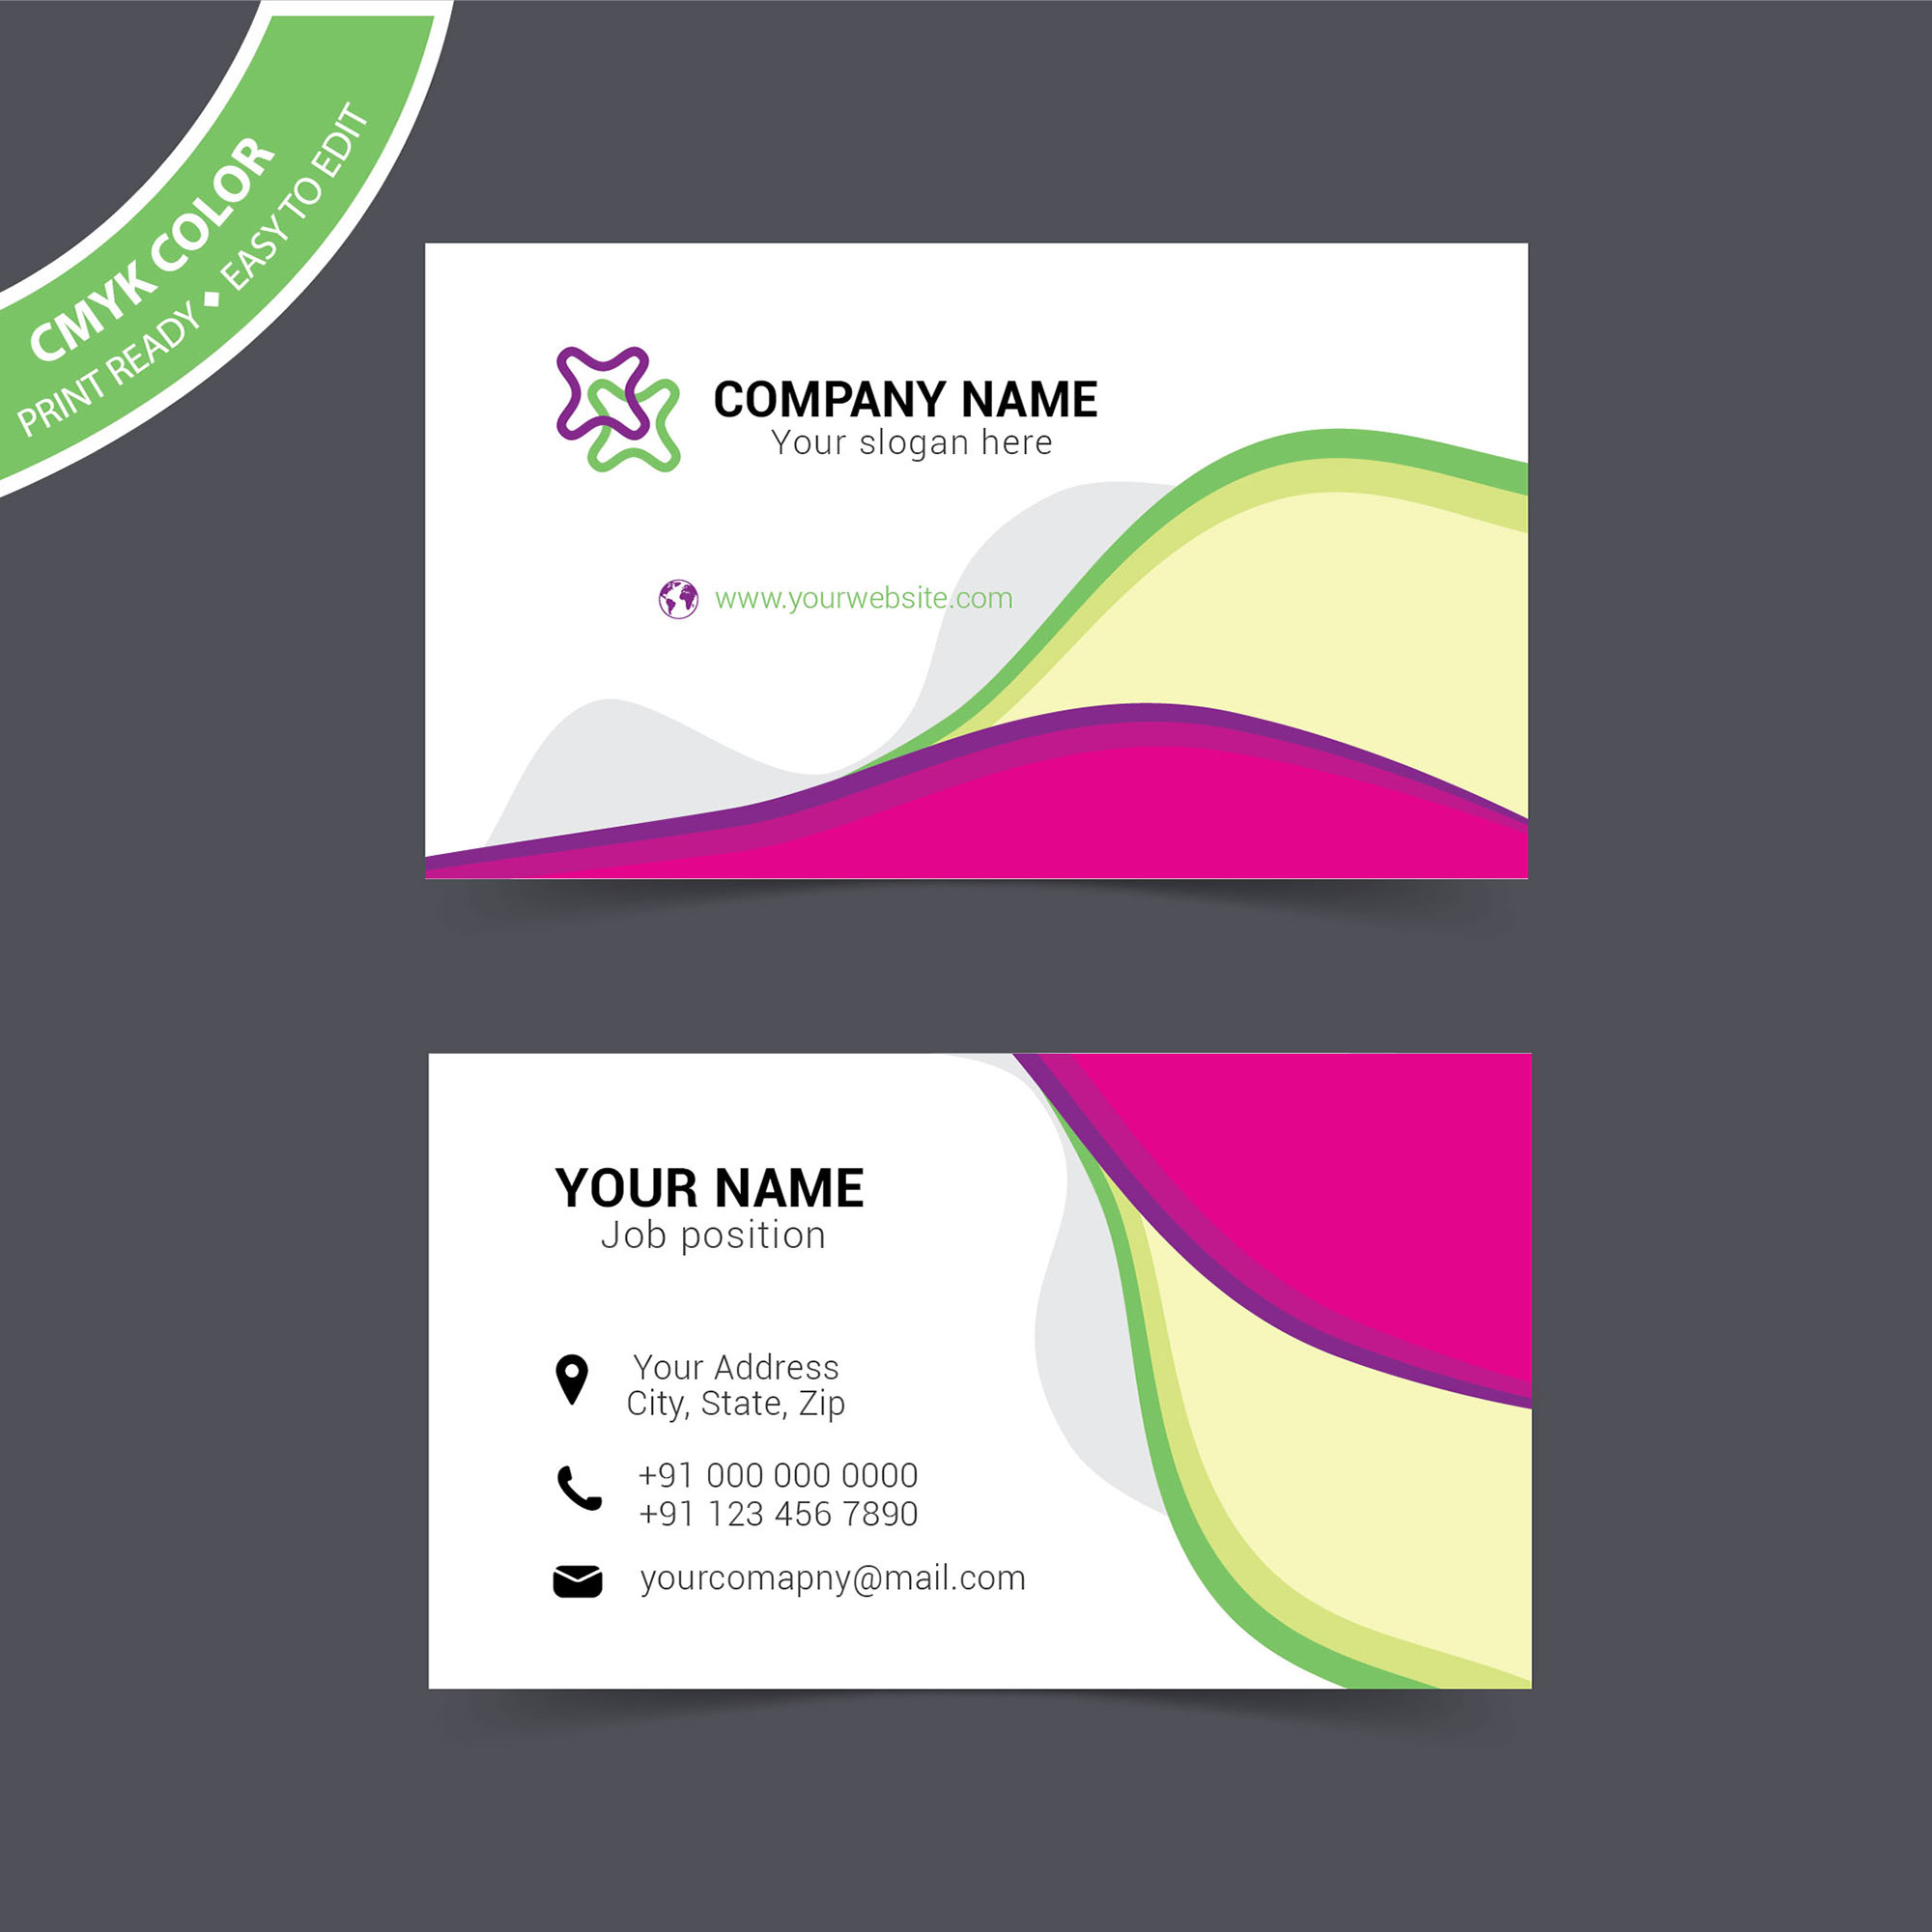 Visiting card design sample free download wisxi business card business cards business card design business card template design templates flashek Images